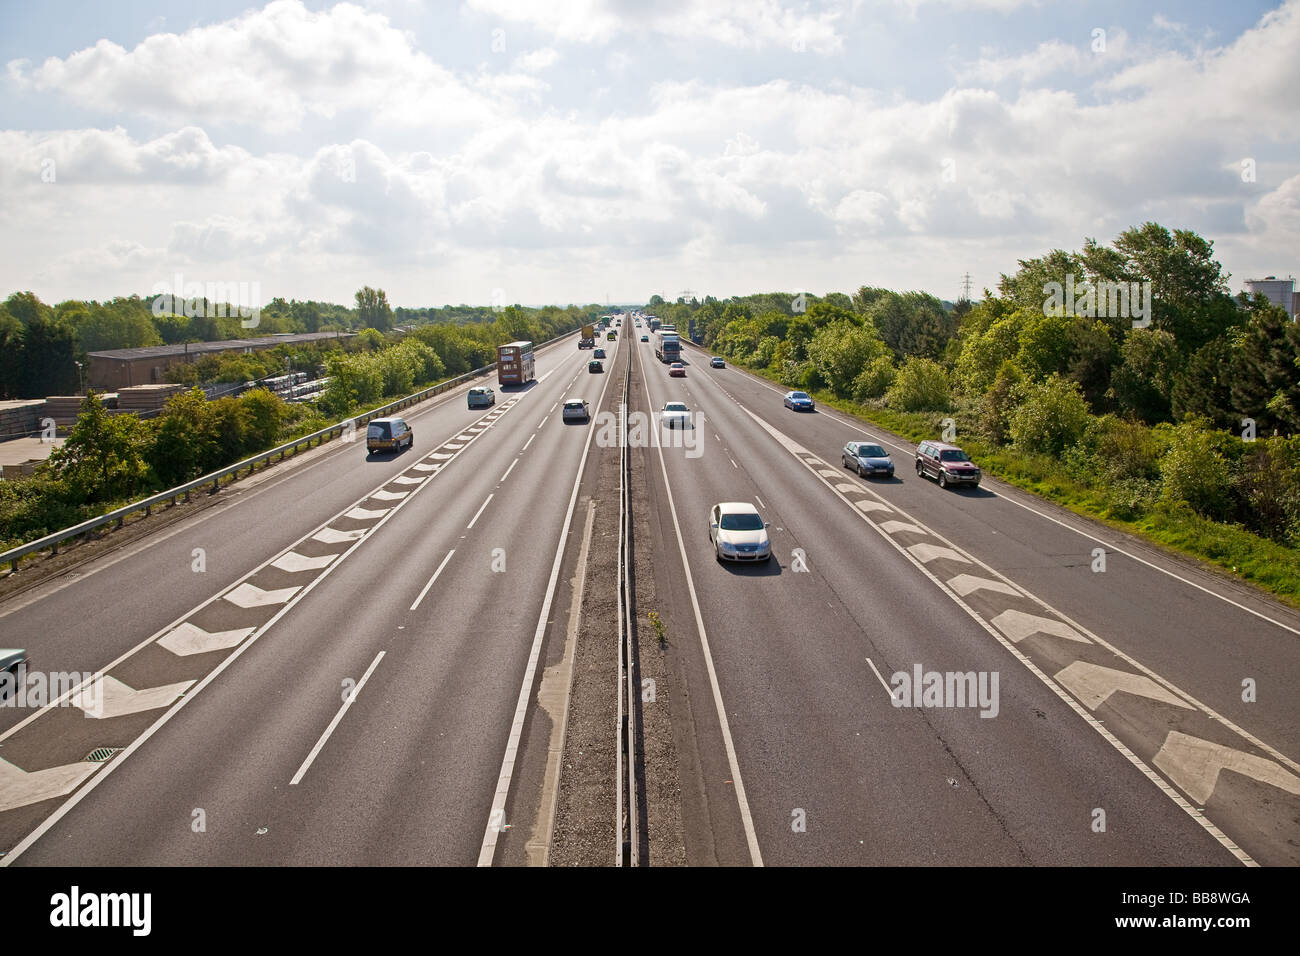 a14-looking-east-milton-cambridge-england-BB8WGA.jpg